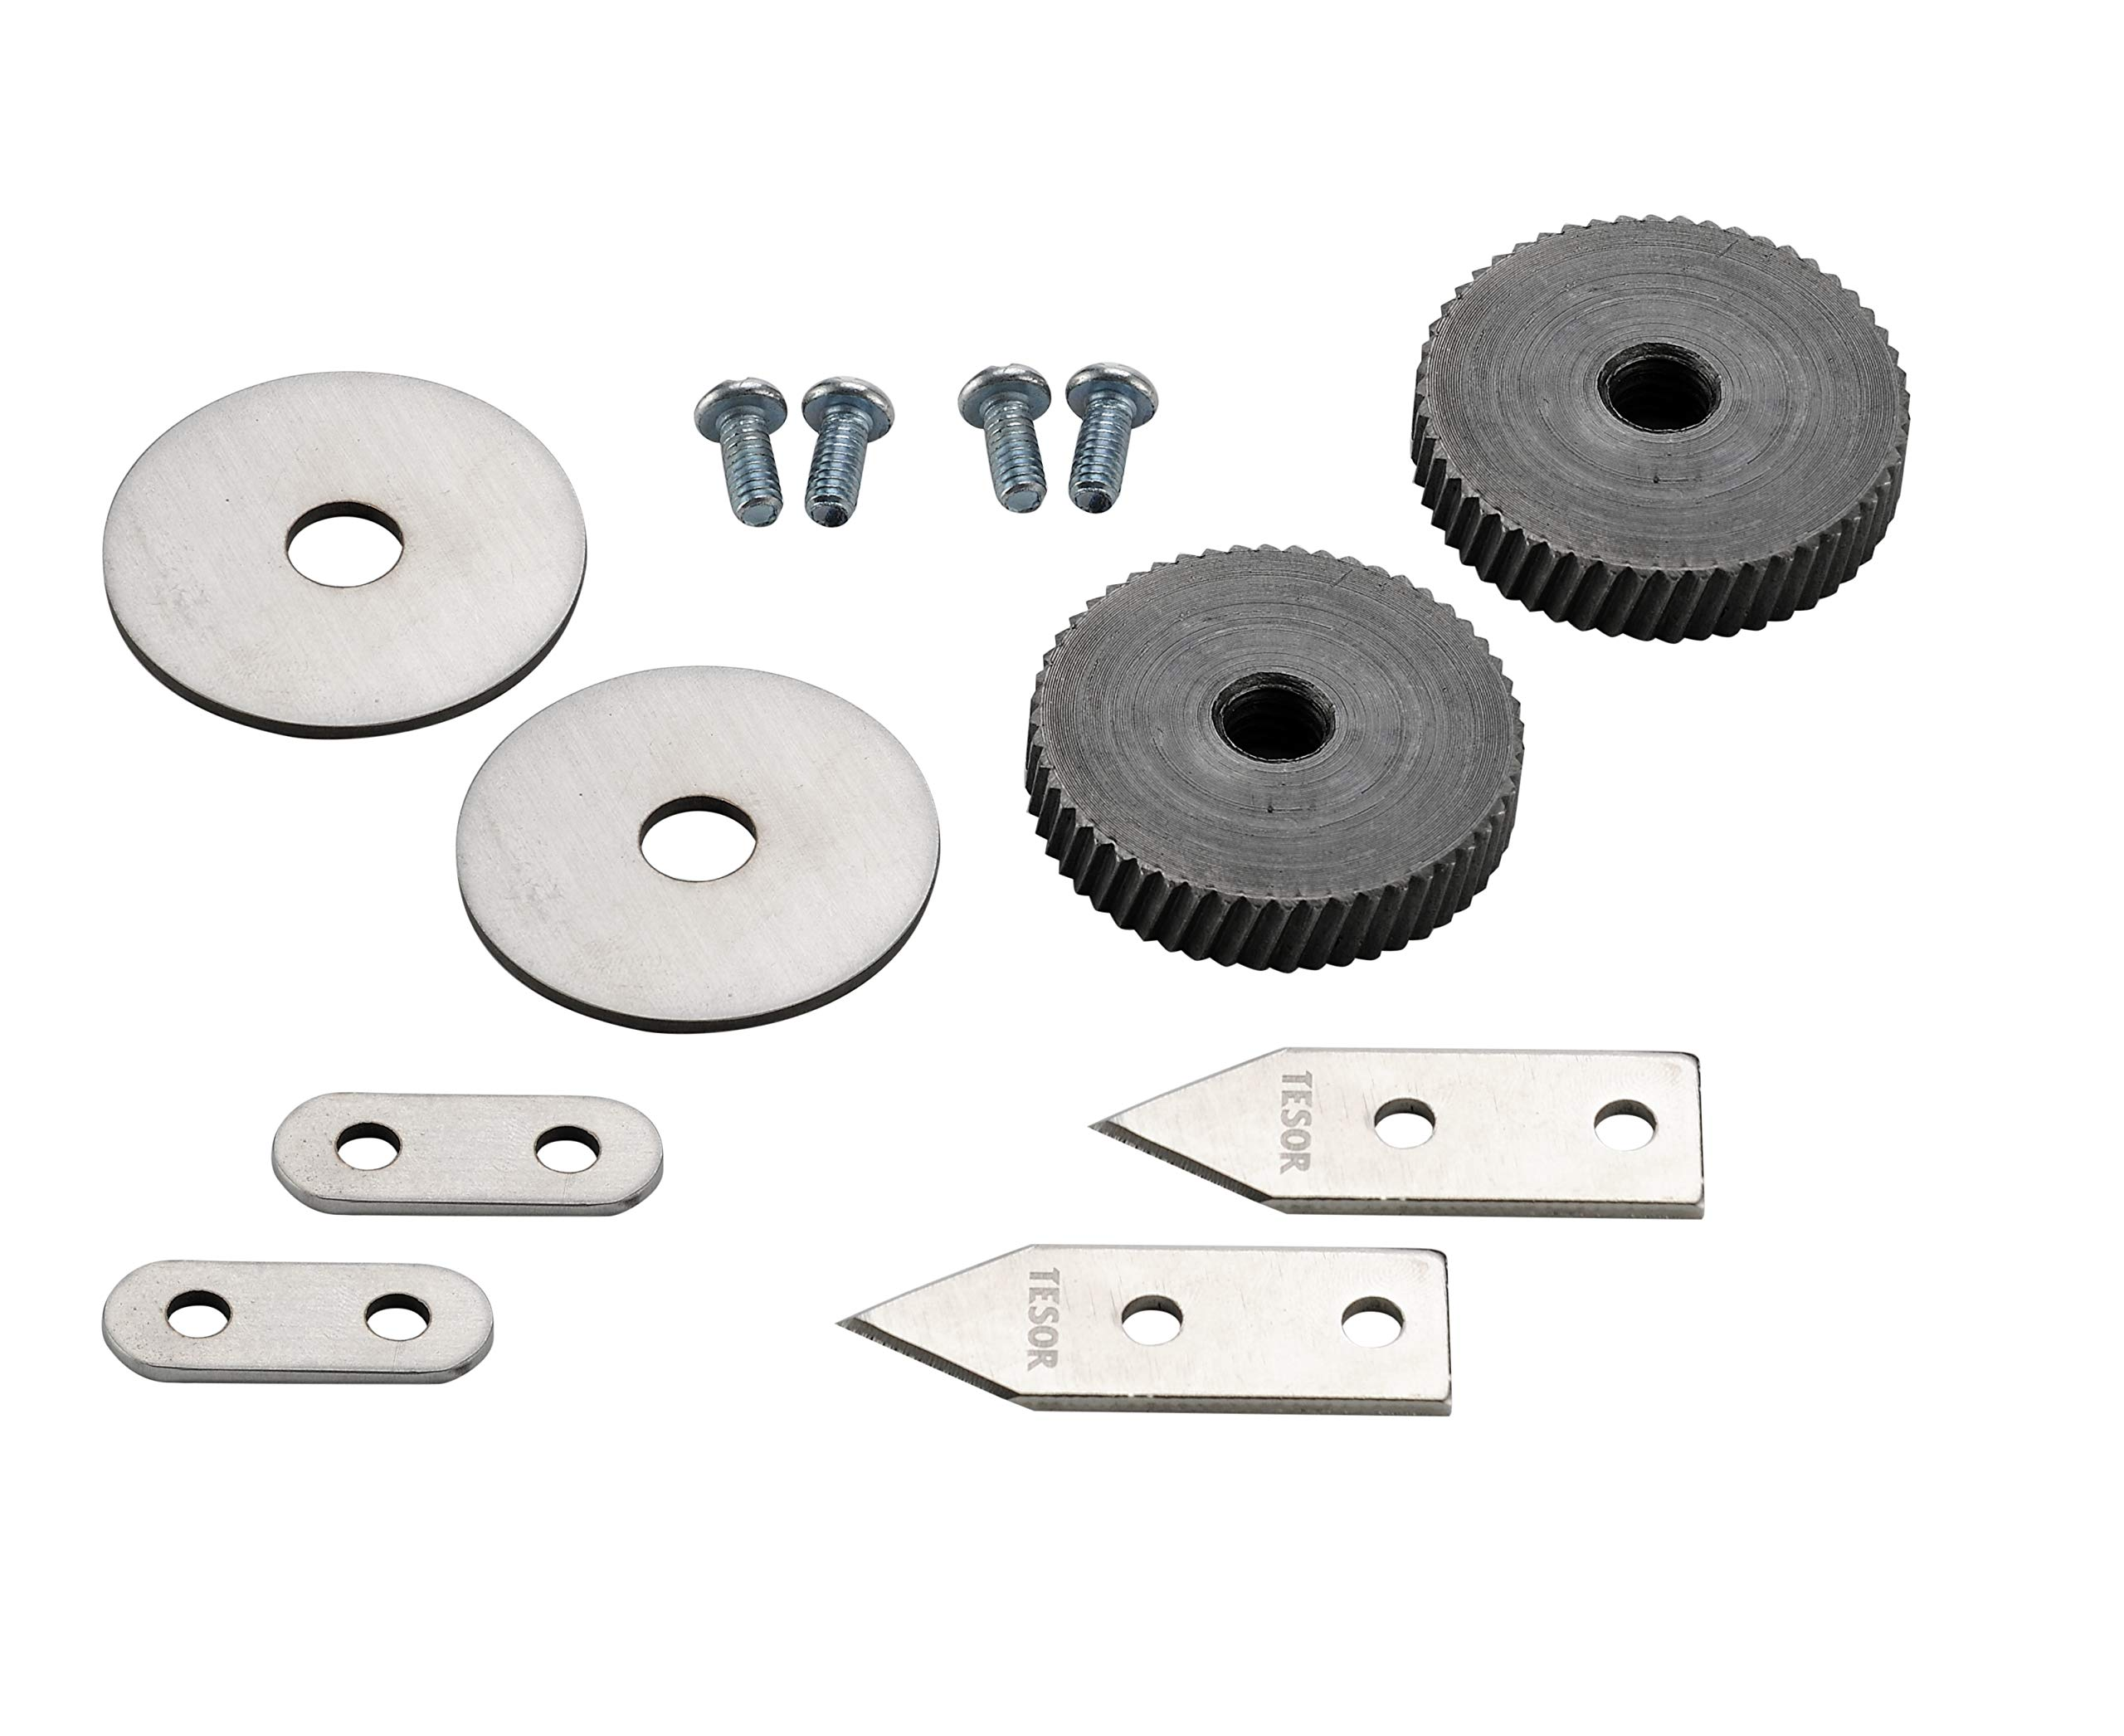 Replacement Parts - Knife/Blade & Gear Compatible with Edlund #1 Commercial Can Openers (#1 Size - 2 Pack) by Tesor